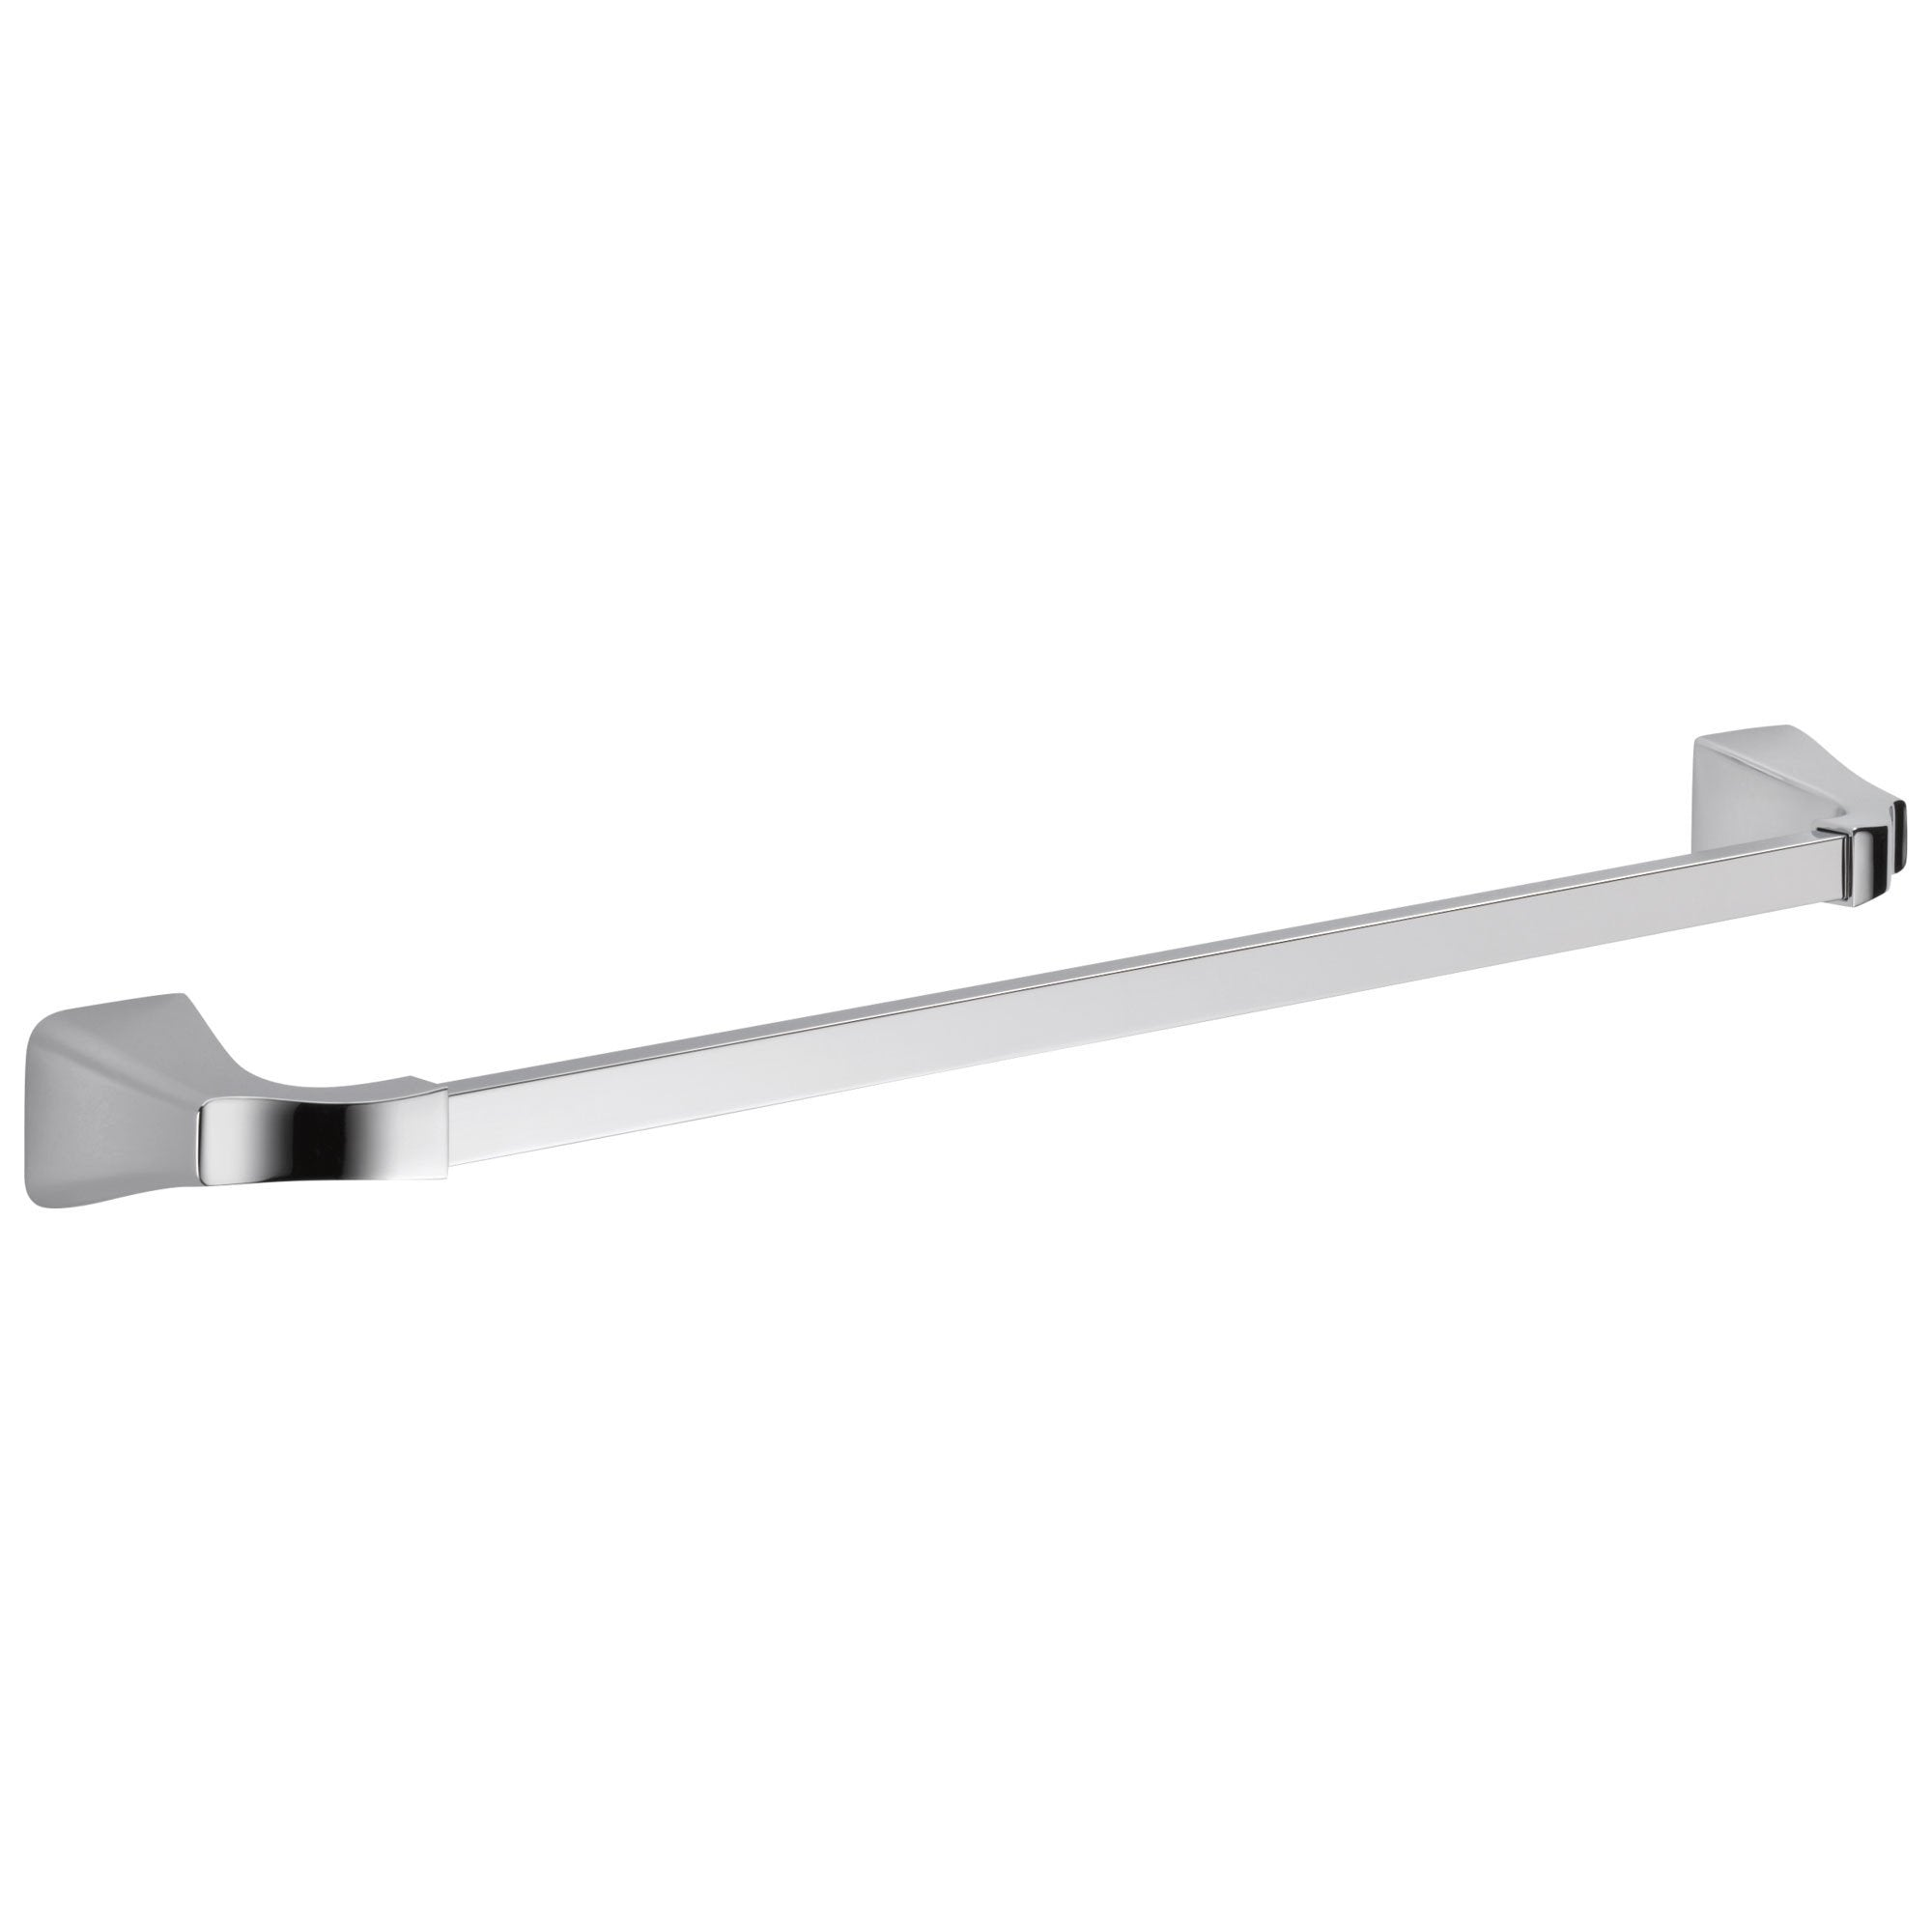 "Delta Tesla Collection Chrome Finish Modern Wall Mounted 24"" Single Towel Bar 714269"